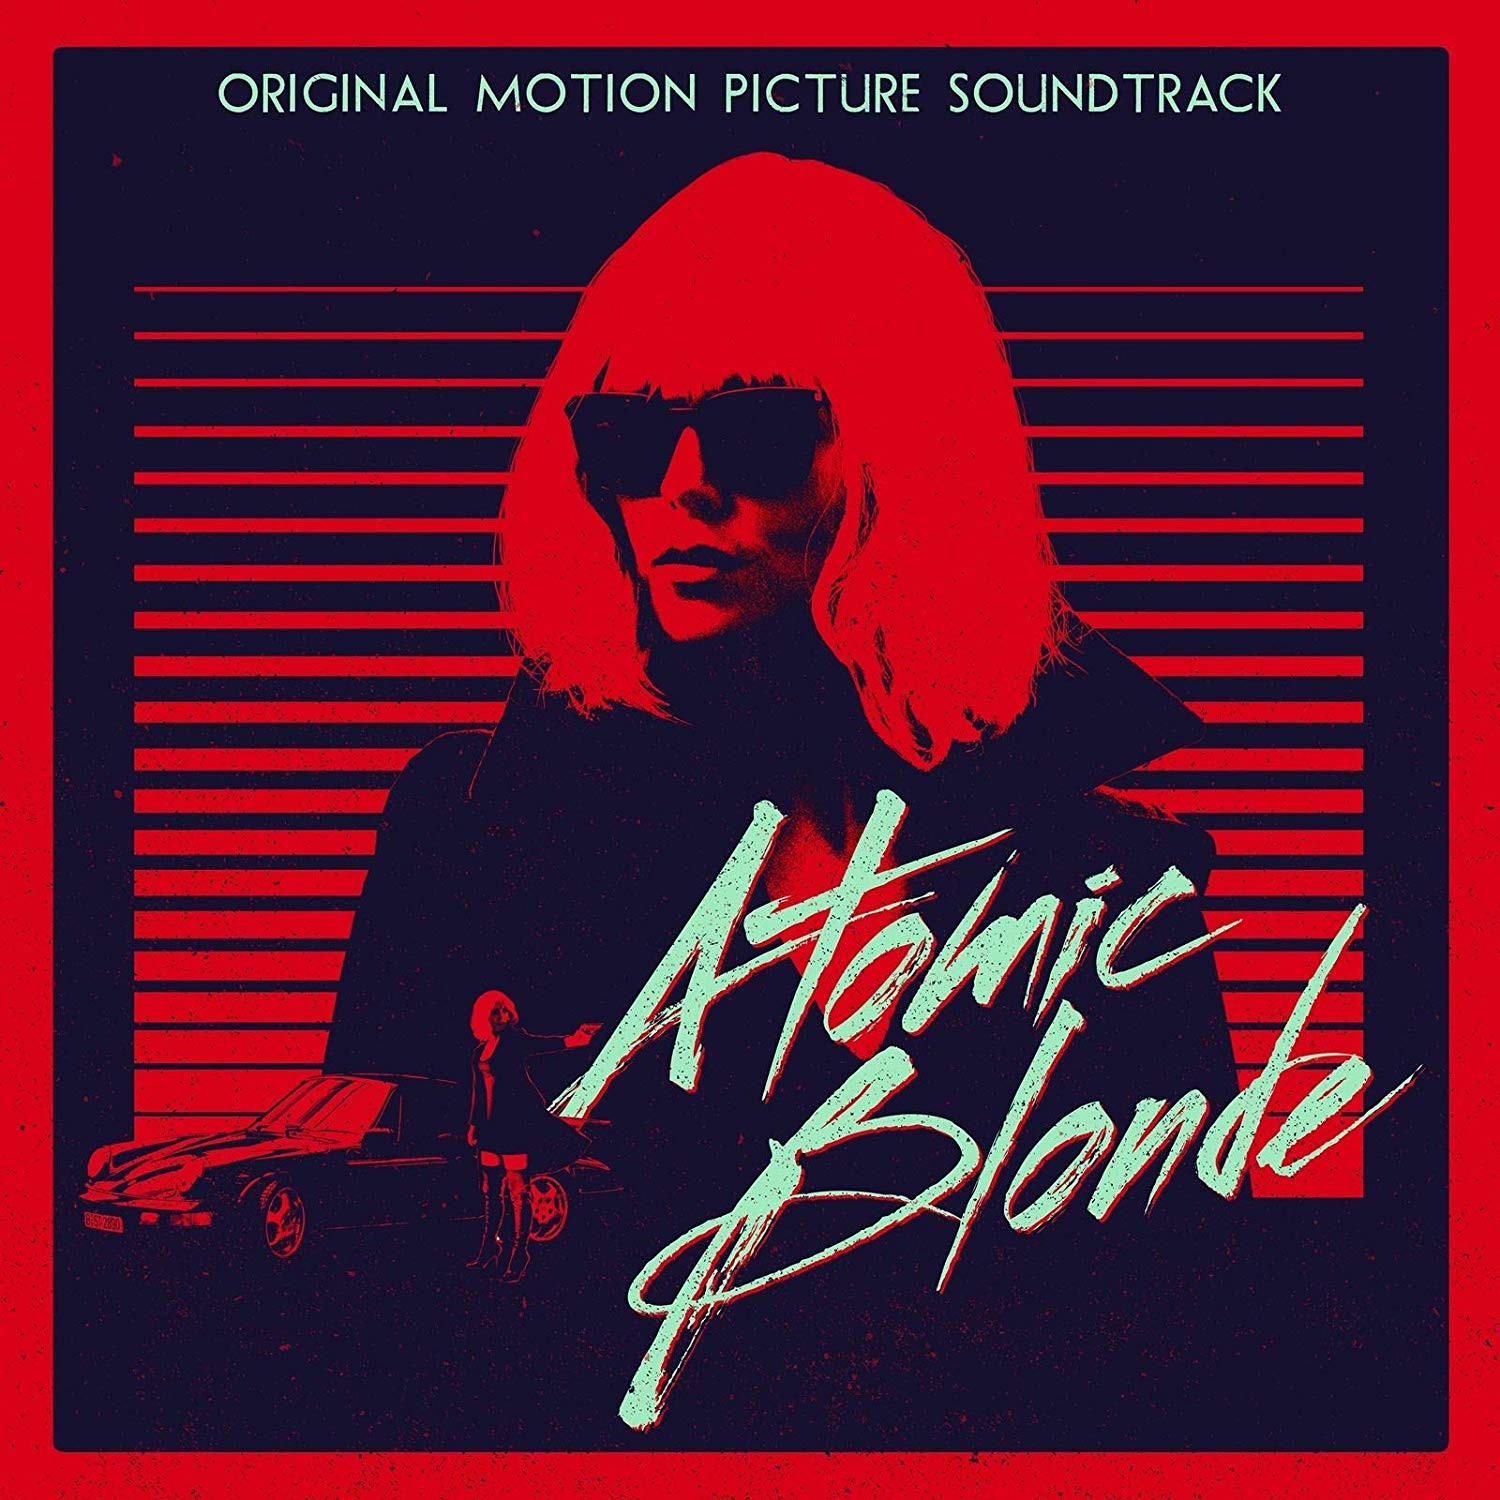 Atomic Blonde - okładka soundtracku CD